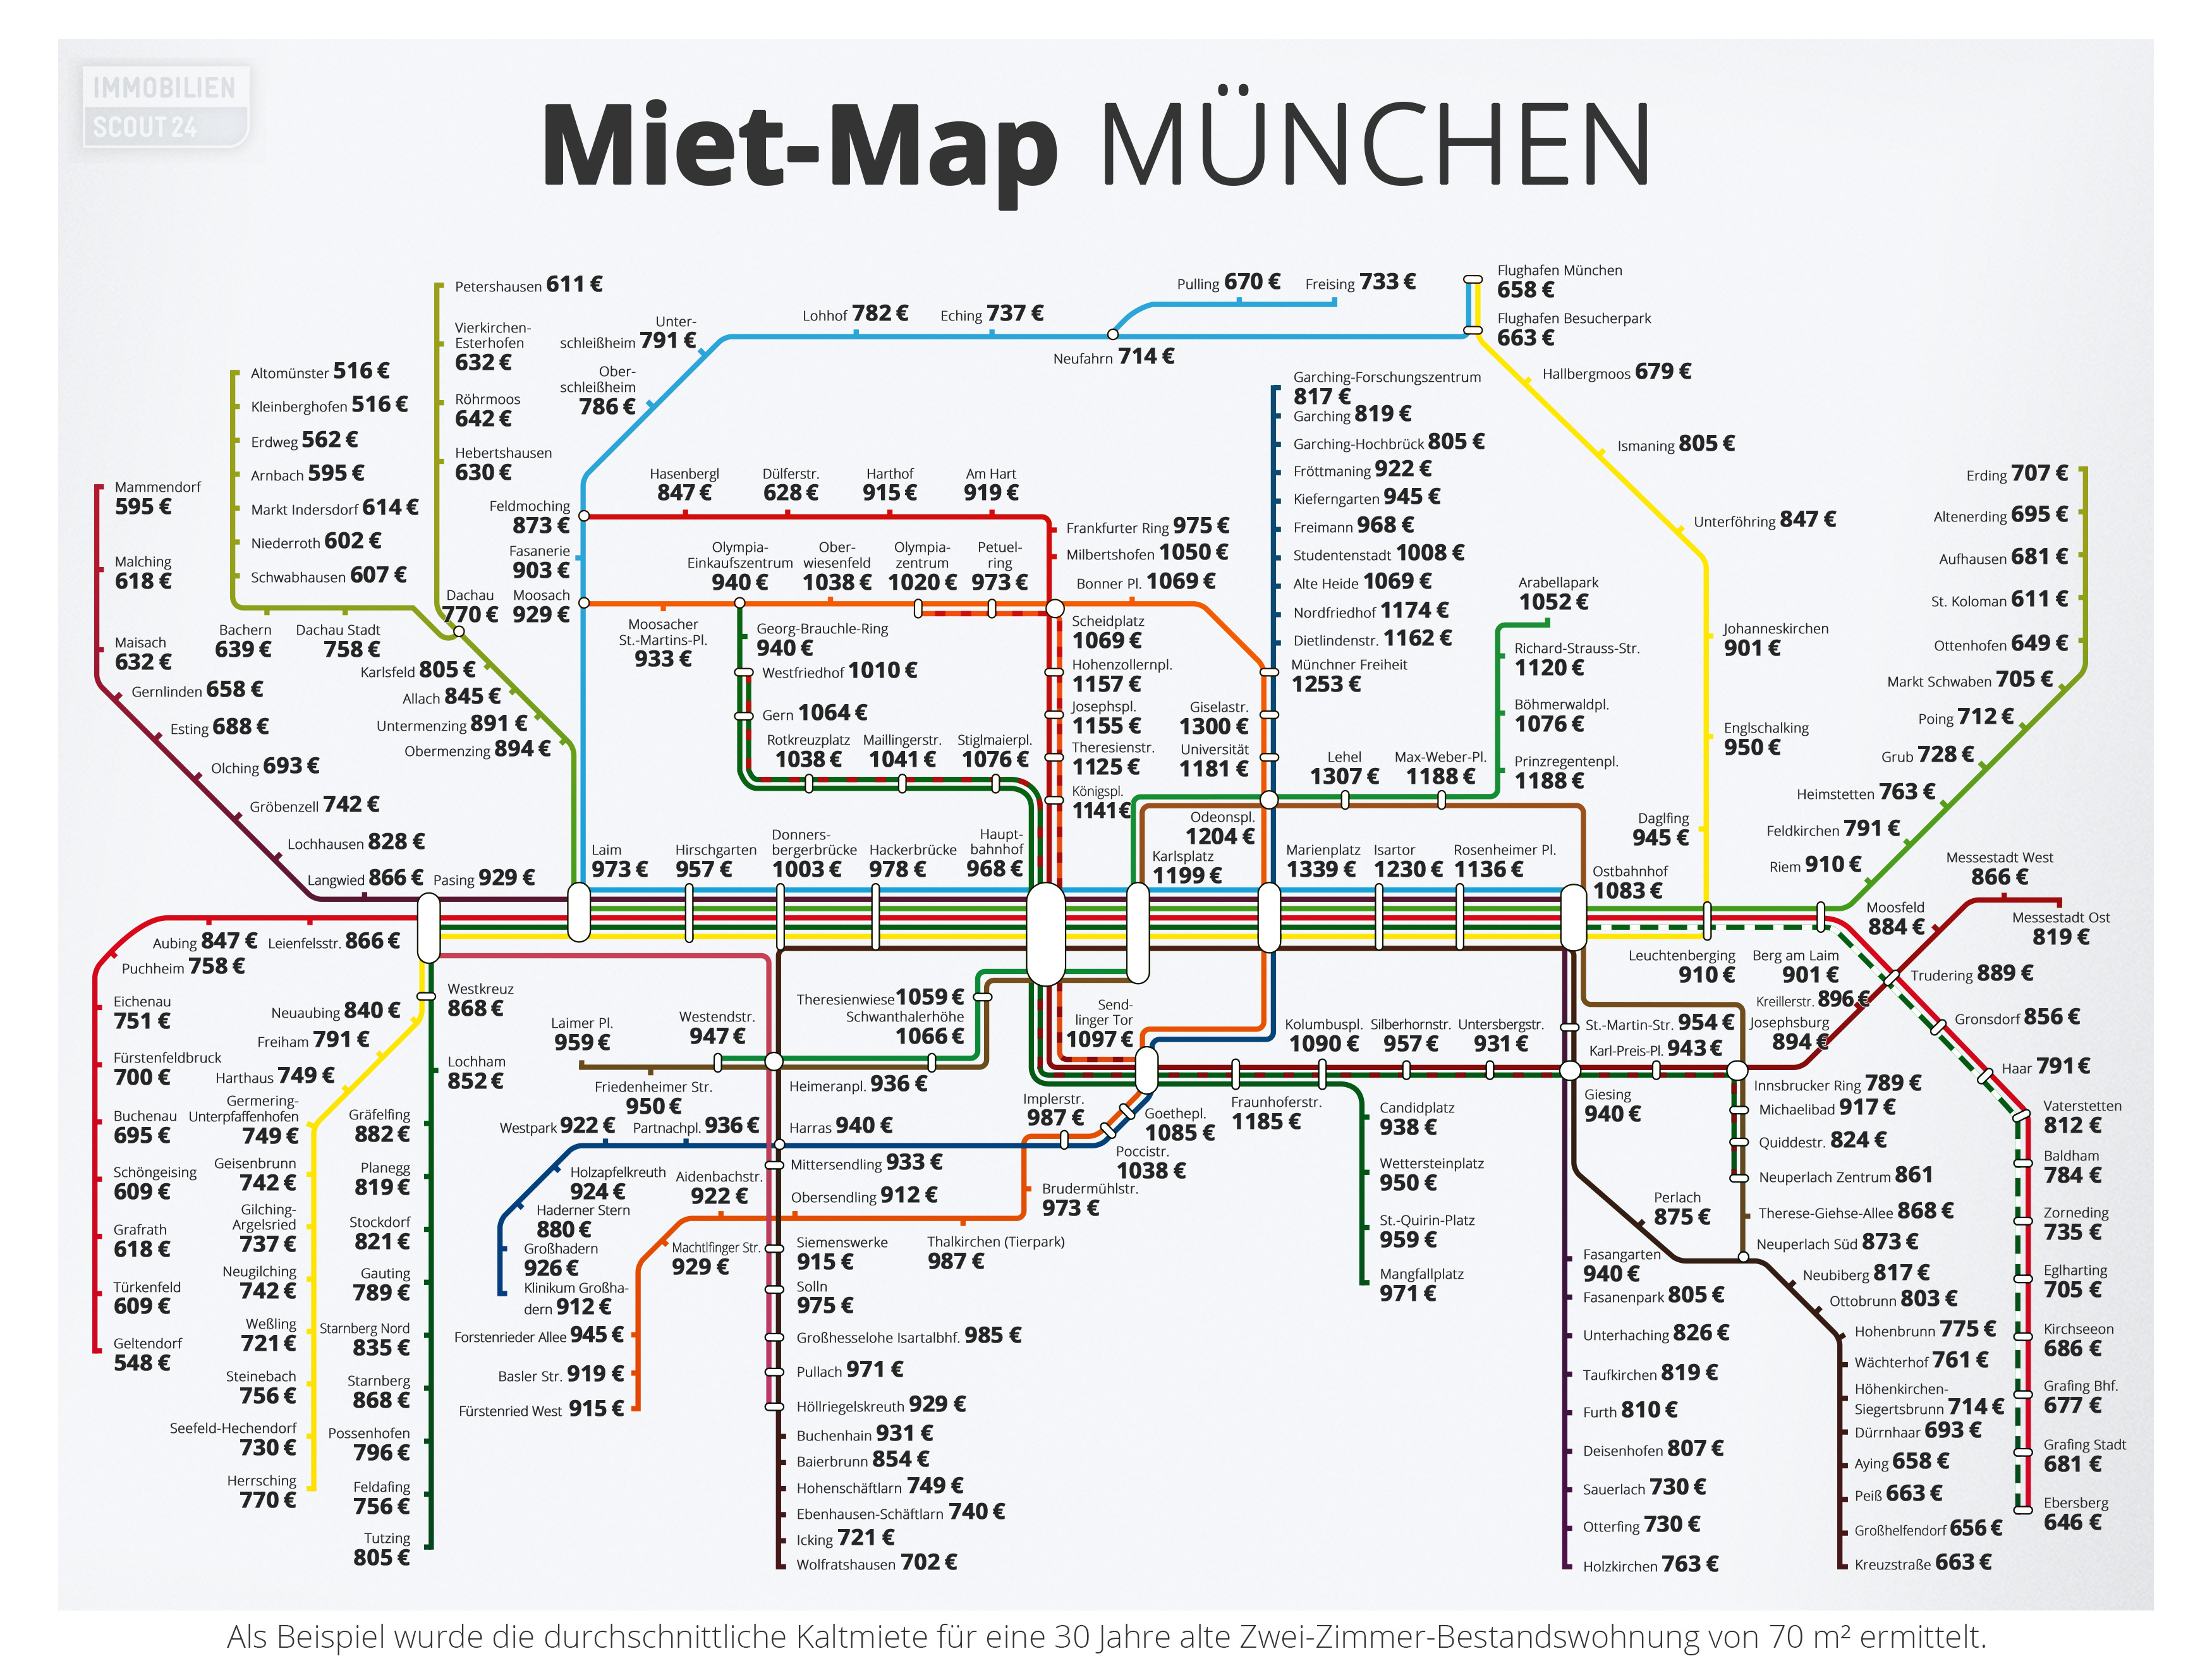 Miet-Map Muenchen